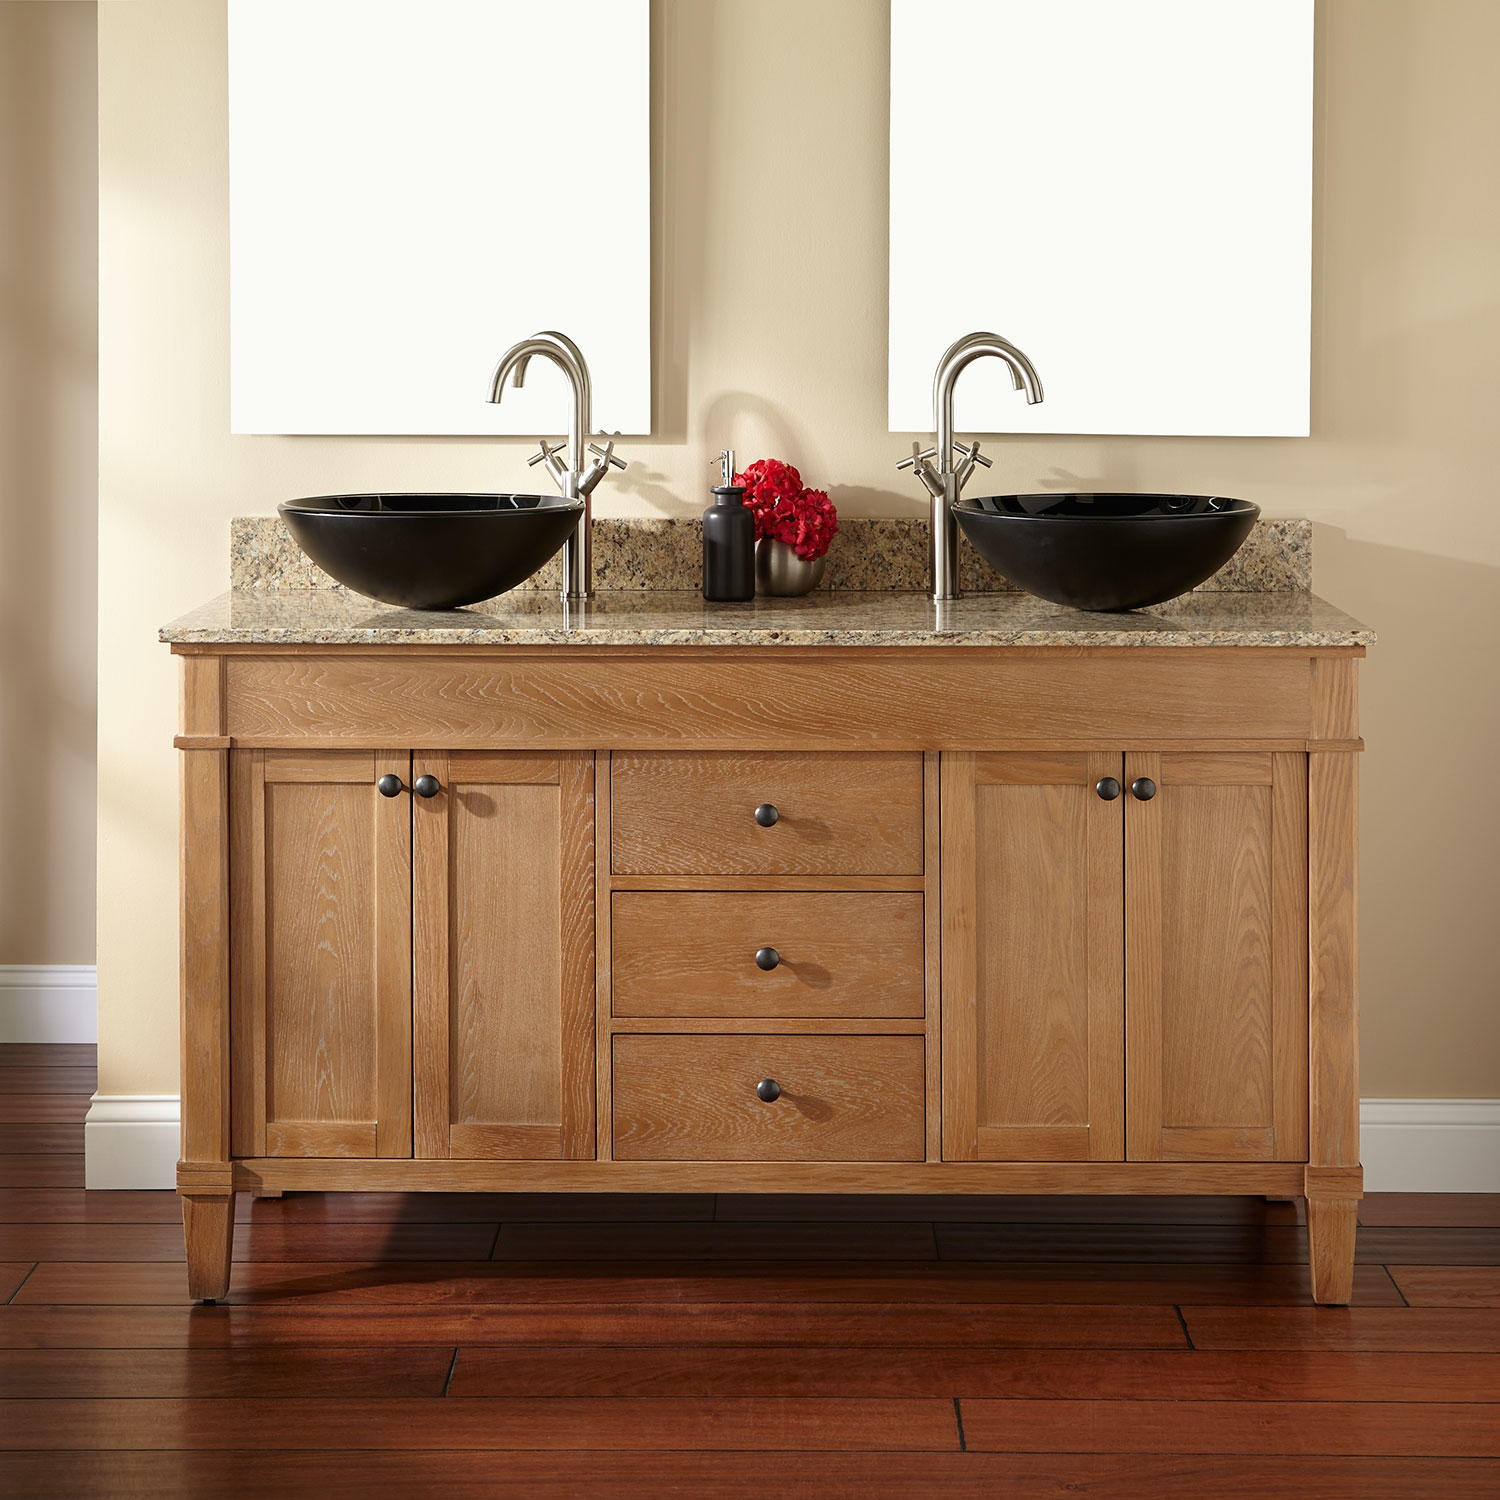 Best ideas about Bathroom Vanity Home Depot . Save or Pin Teak vanity cabinet bathroom vanity cabinet with vessel Now.